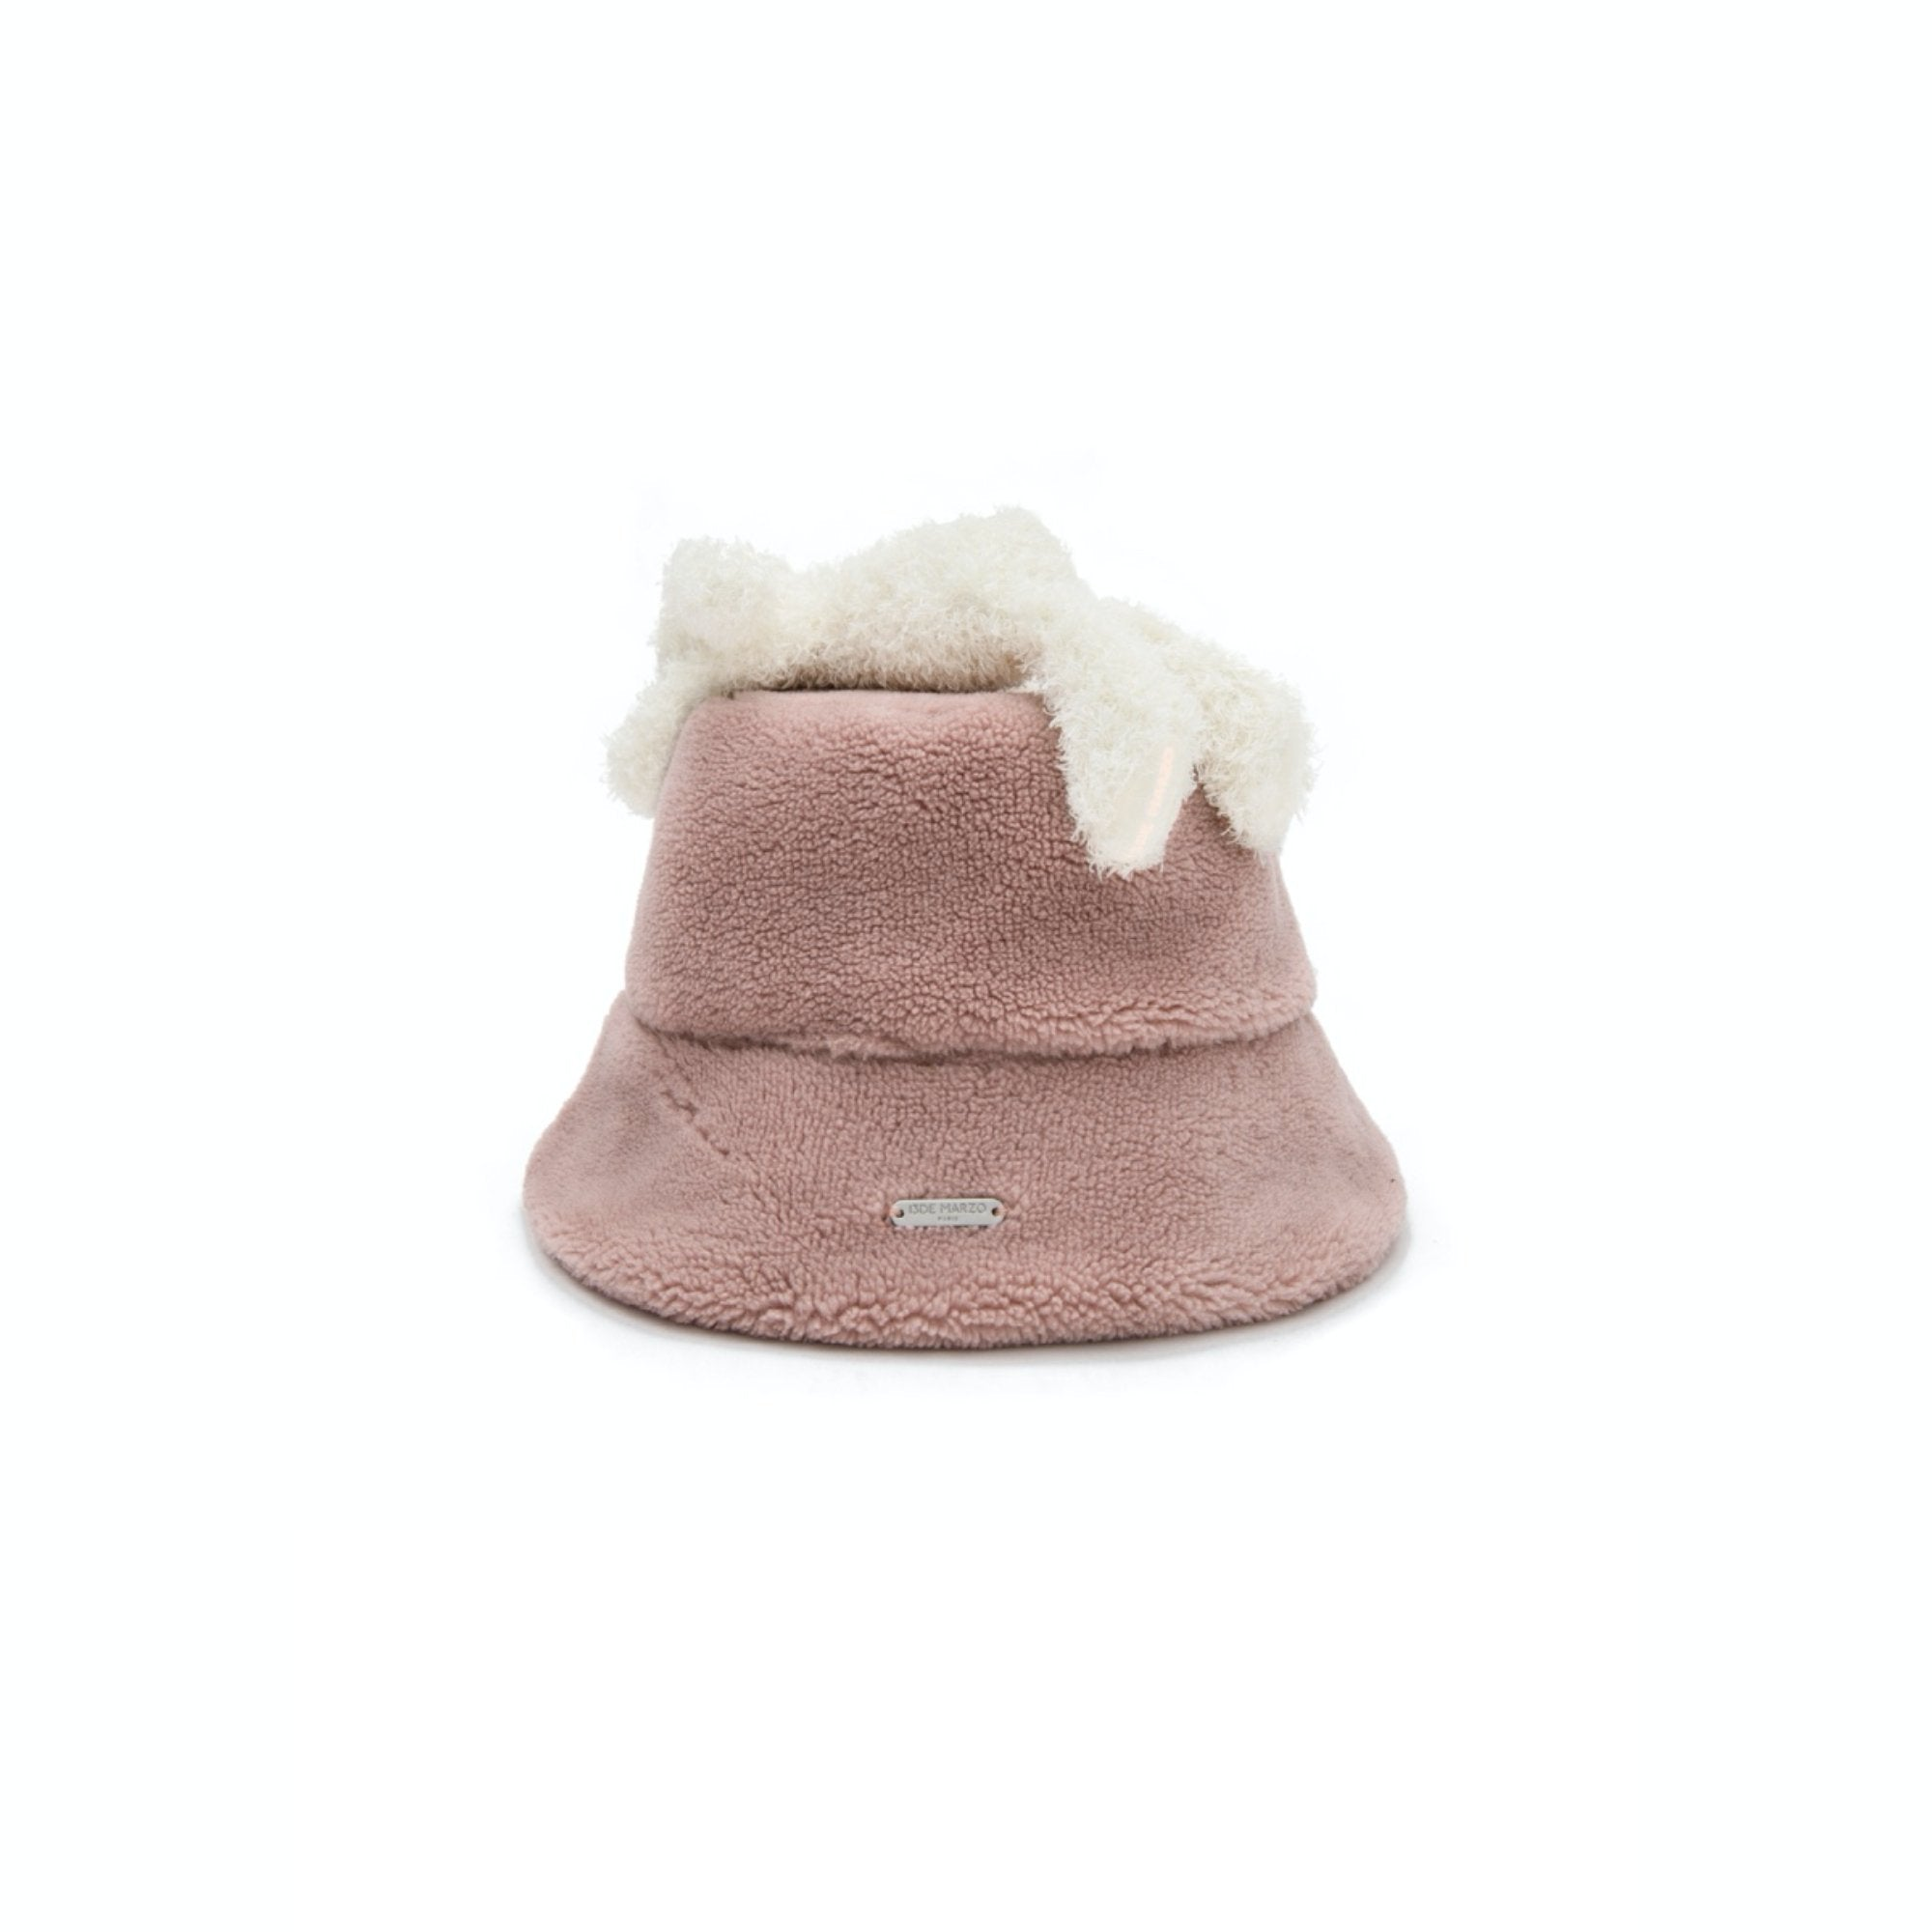 13 DE MARZO Lazy Teddy Bear Both-side Bucket Hat Coral Cloud | MADA IN CHINA